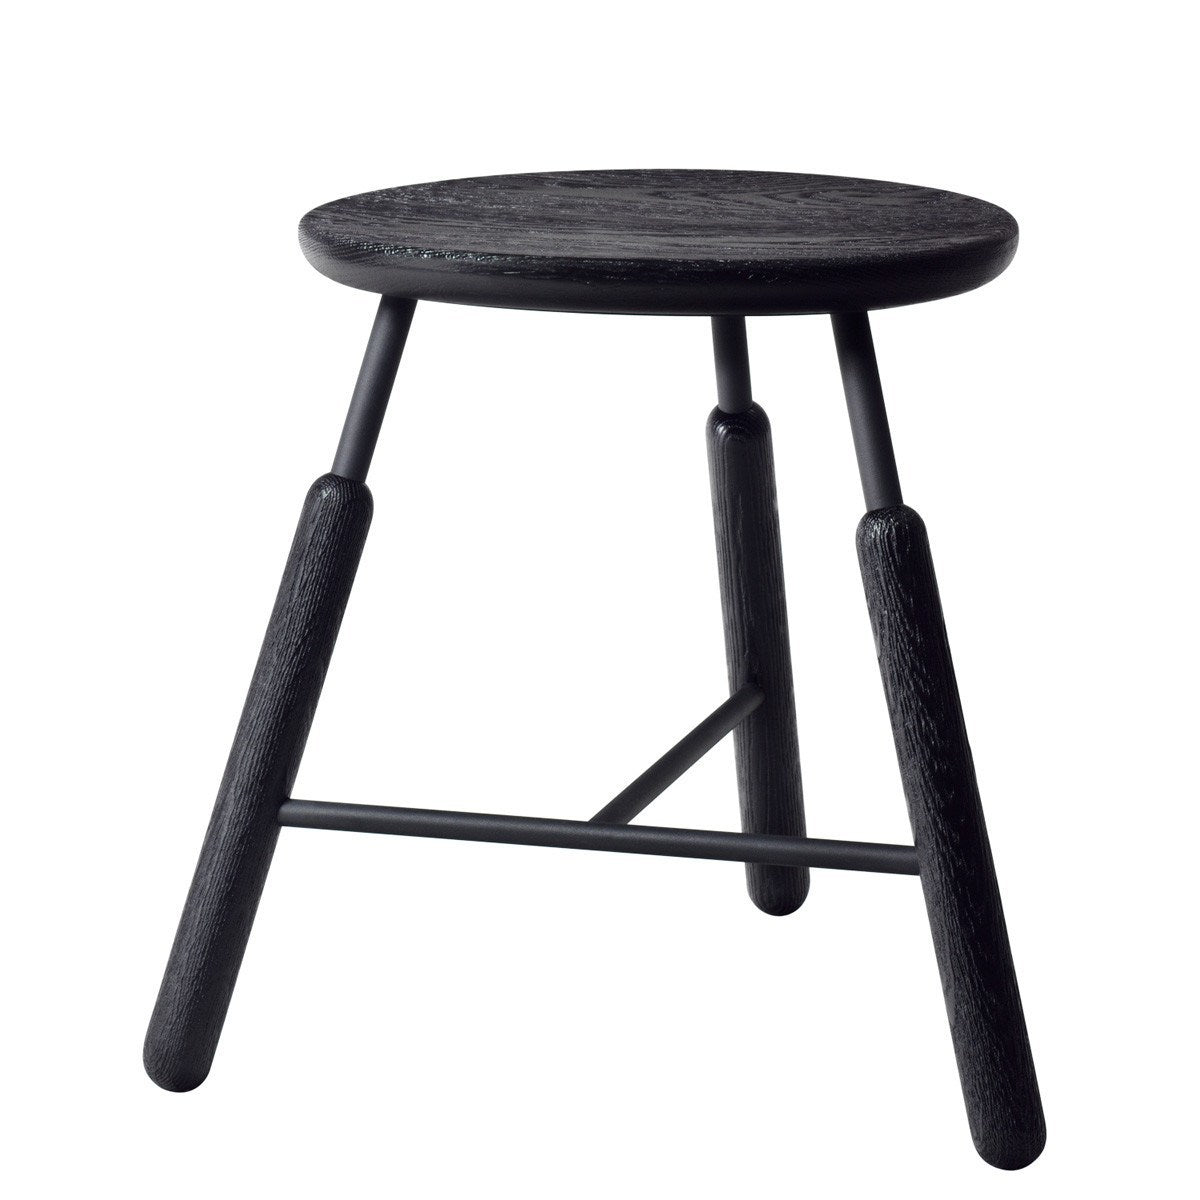 &TRADITION RAFT STOOL - Eclectic Cool  - 4